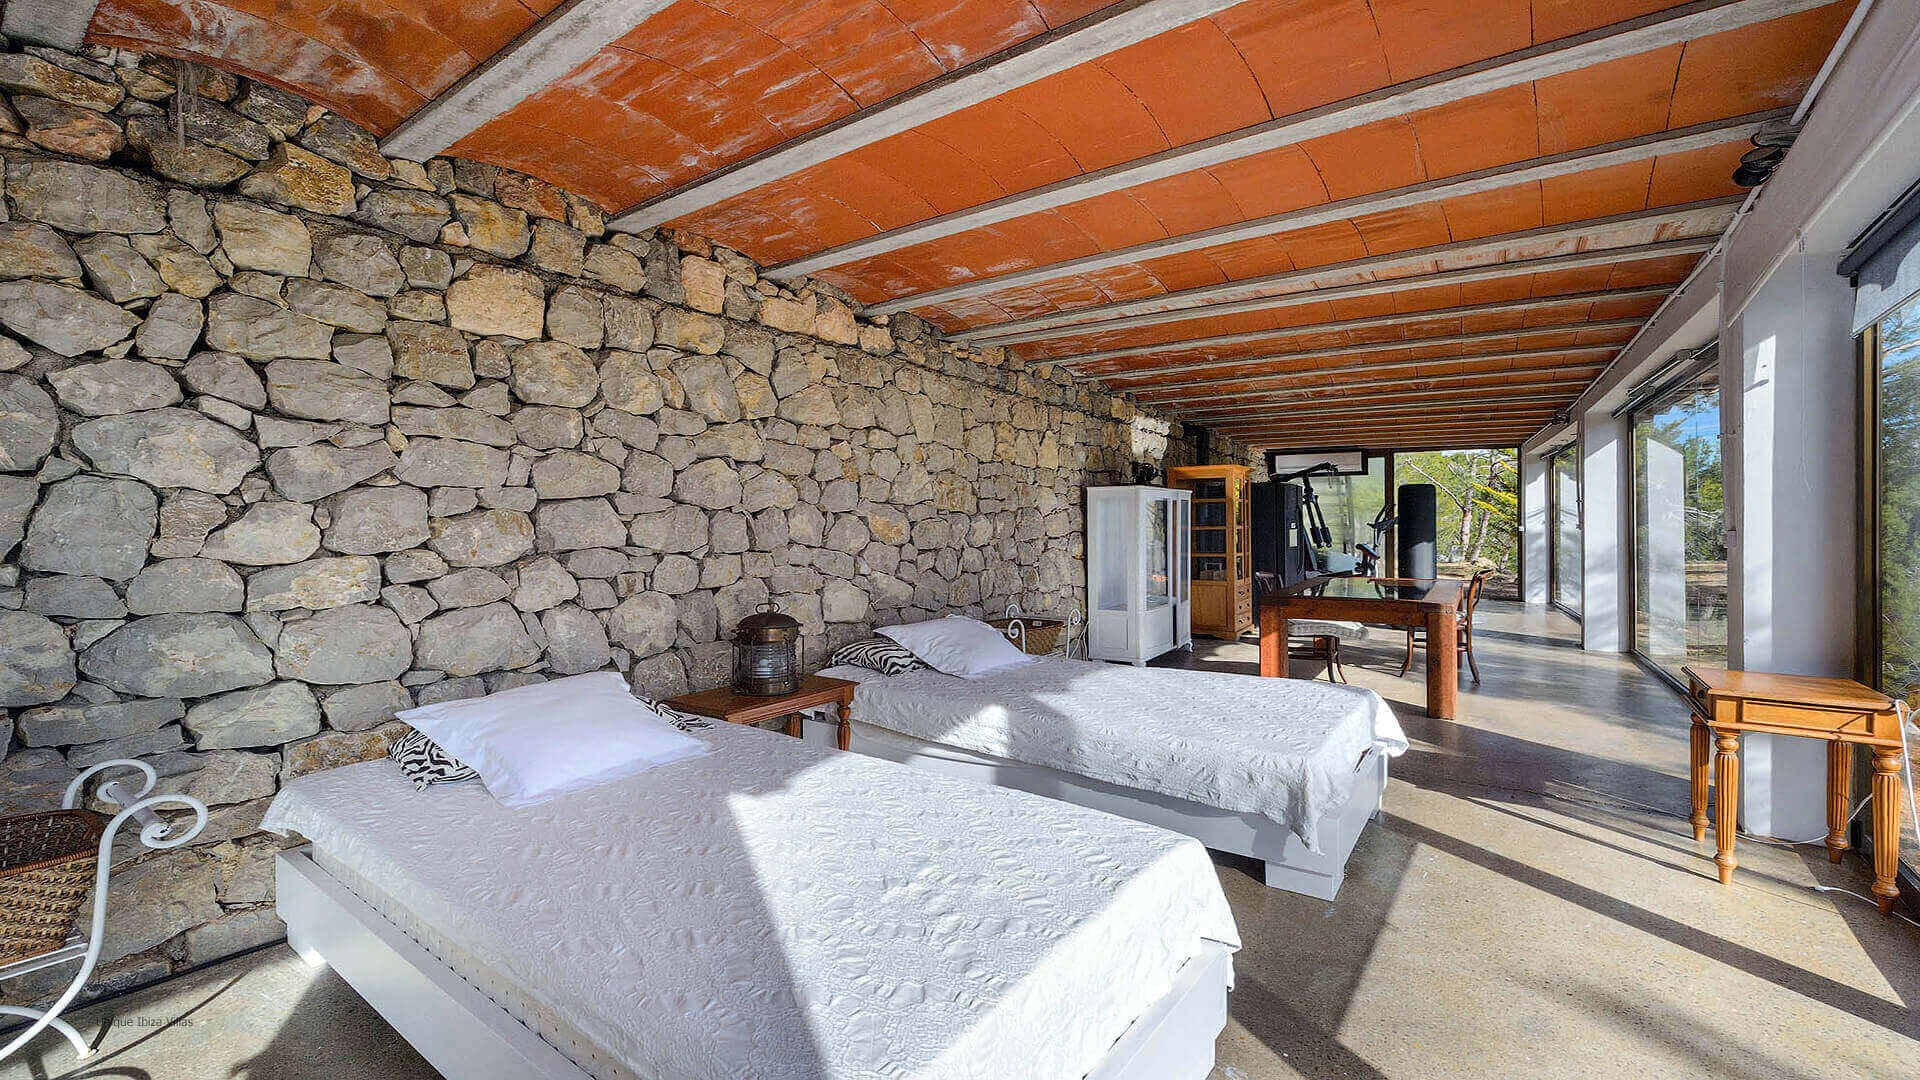 Villa Barrica Ibiza 44 Gym Bedroom 5